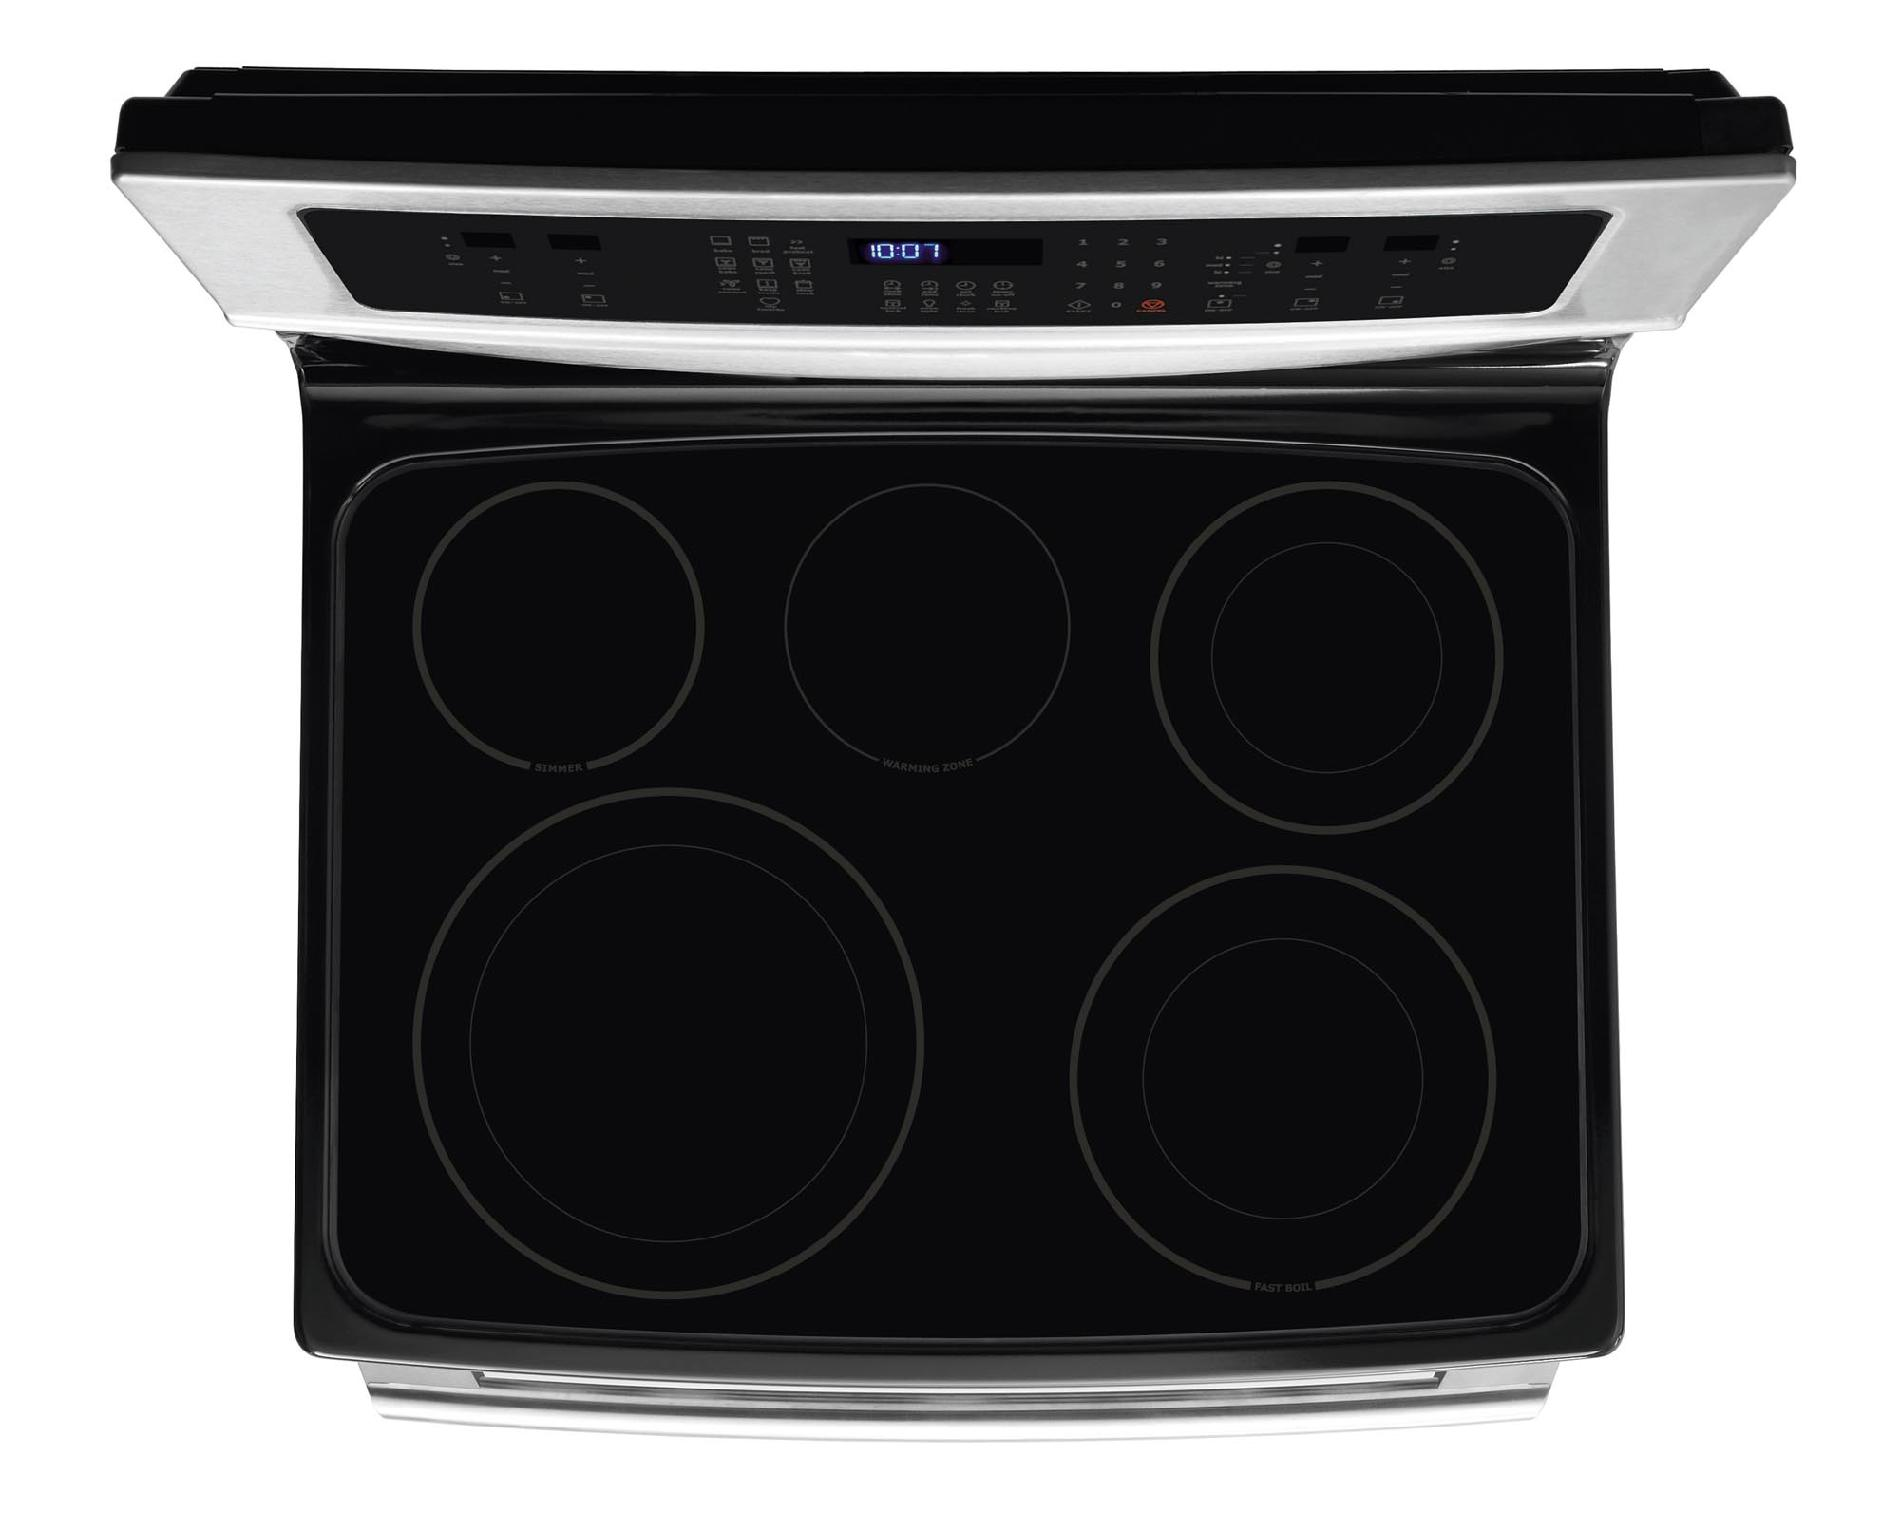 Electrolux 5.8 cu. ft. Electric Range w/ IQ-Touch™ Controls - Stainless Steel